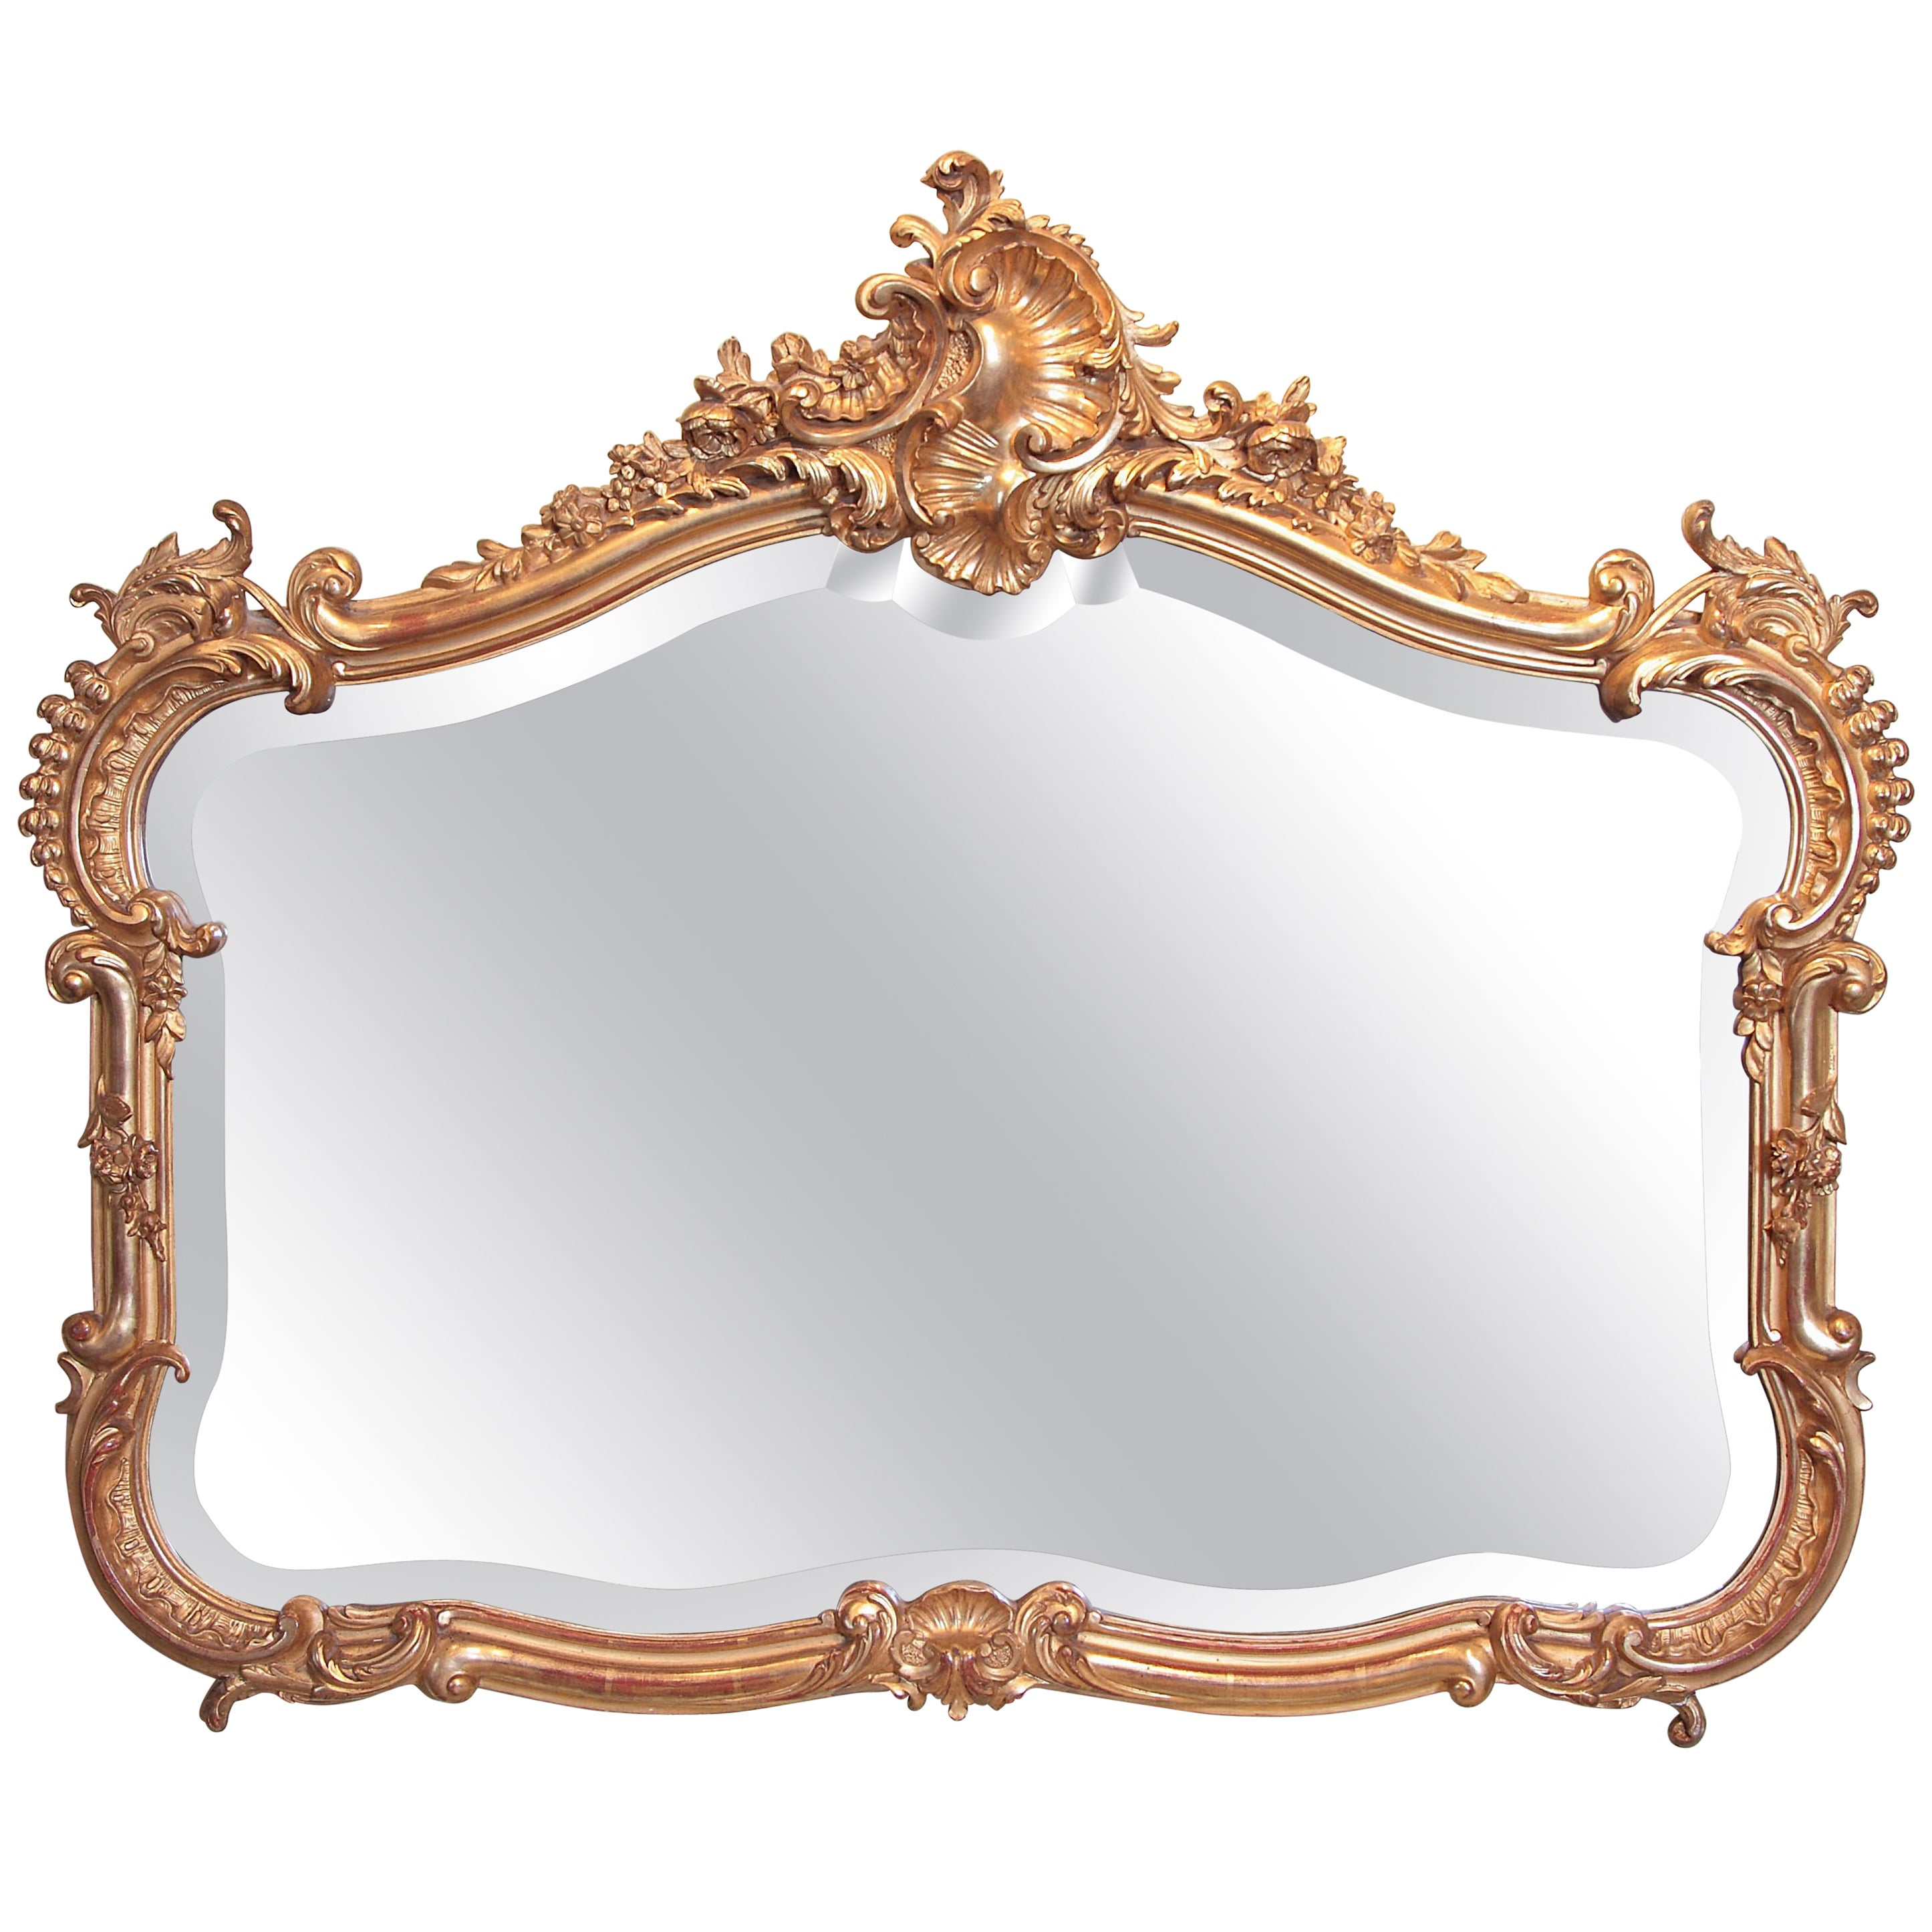 19th Century French Louis XV Carved and Gilt Horizontal Mirror